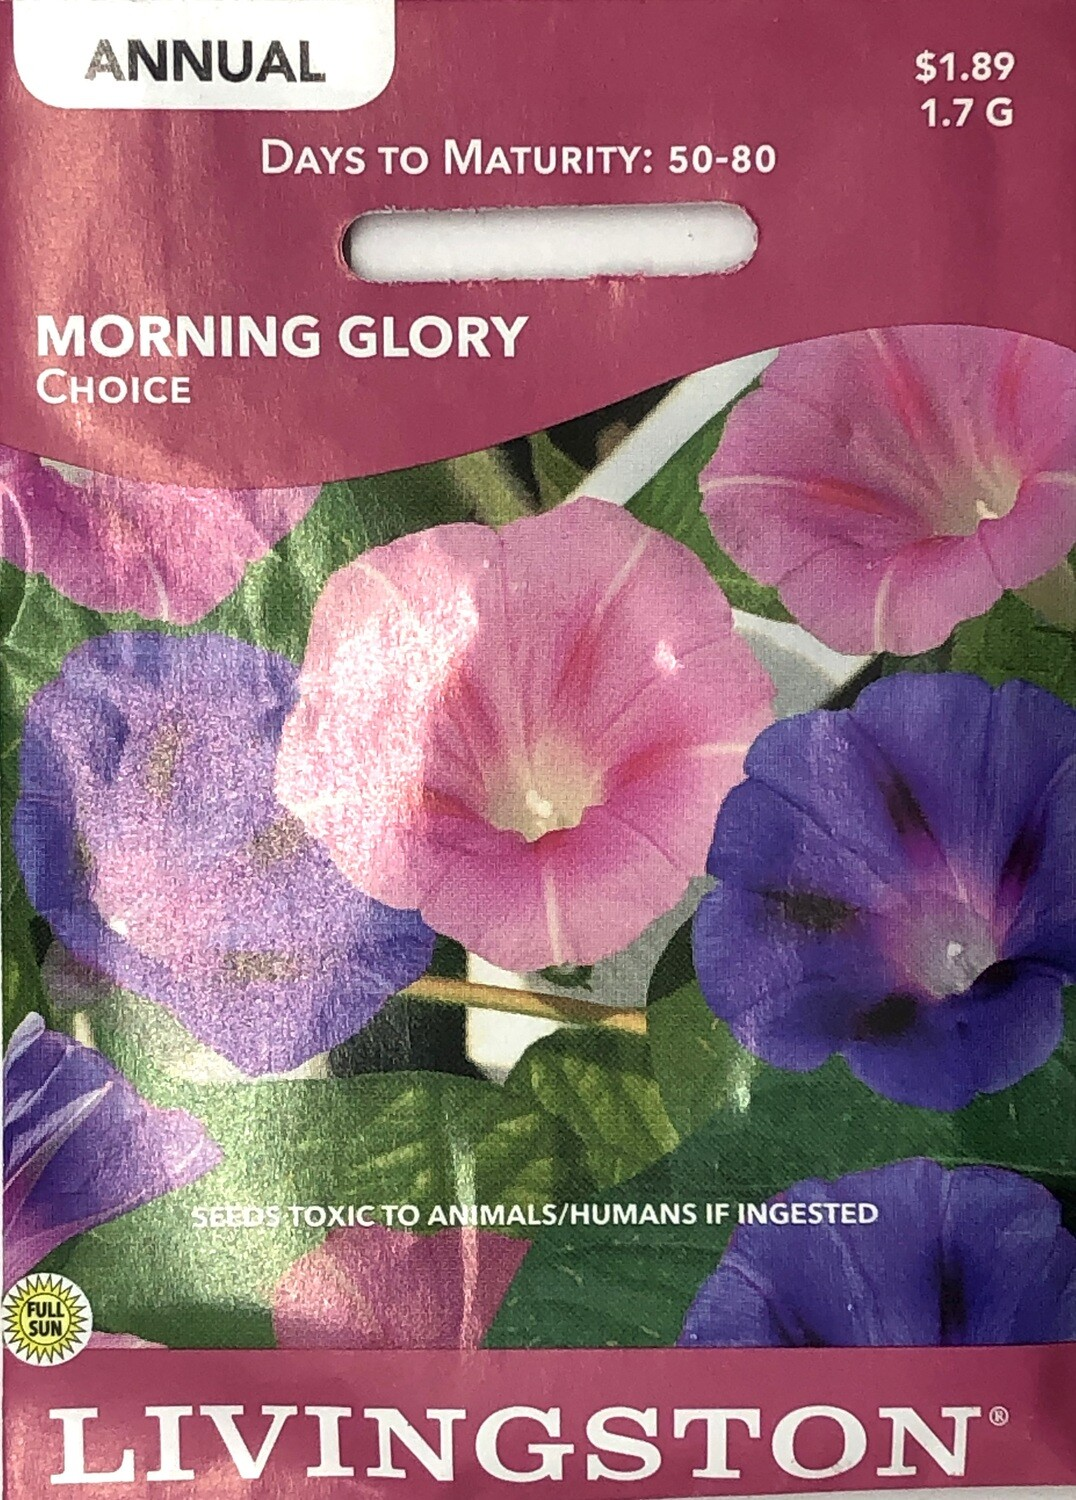 MORNING GLORY - CHOICE